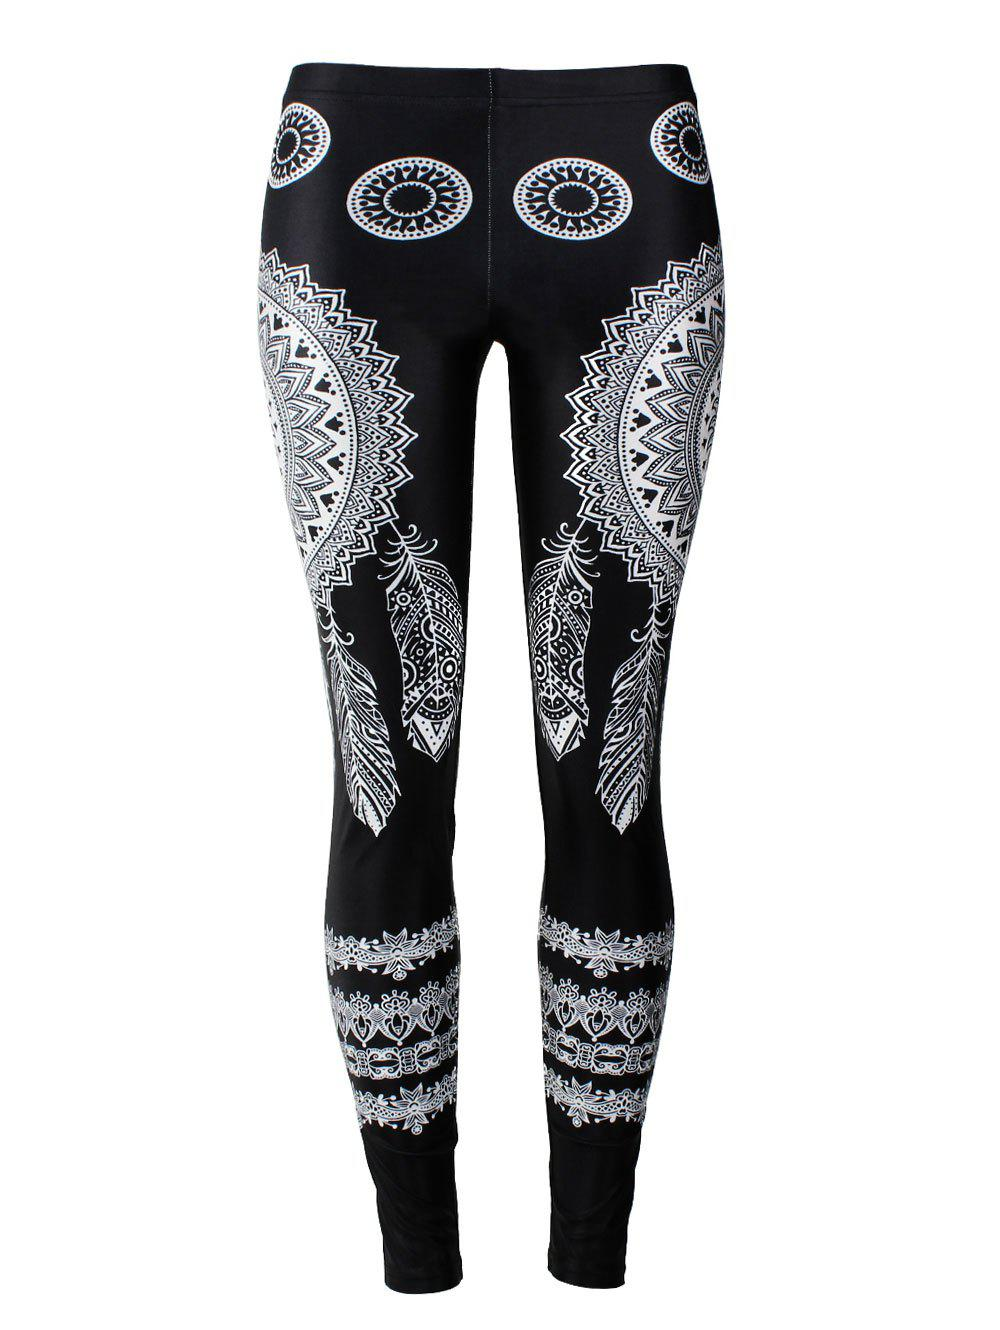 Skinny Bohemian Feather Print LeggingsWOMEN<br><br>Size: XL; Color: BLACK; Style: Fashion; Material: Polyester; Waist Type: Mid; Pattern Type: Print; Weight: 0.2300kg; Package Contents: 1 x Leggings;